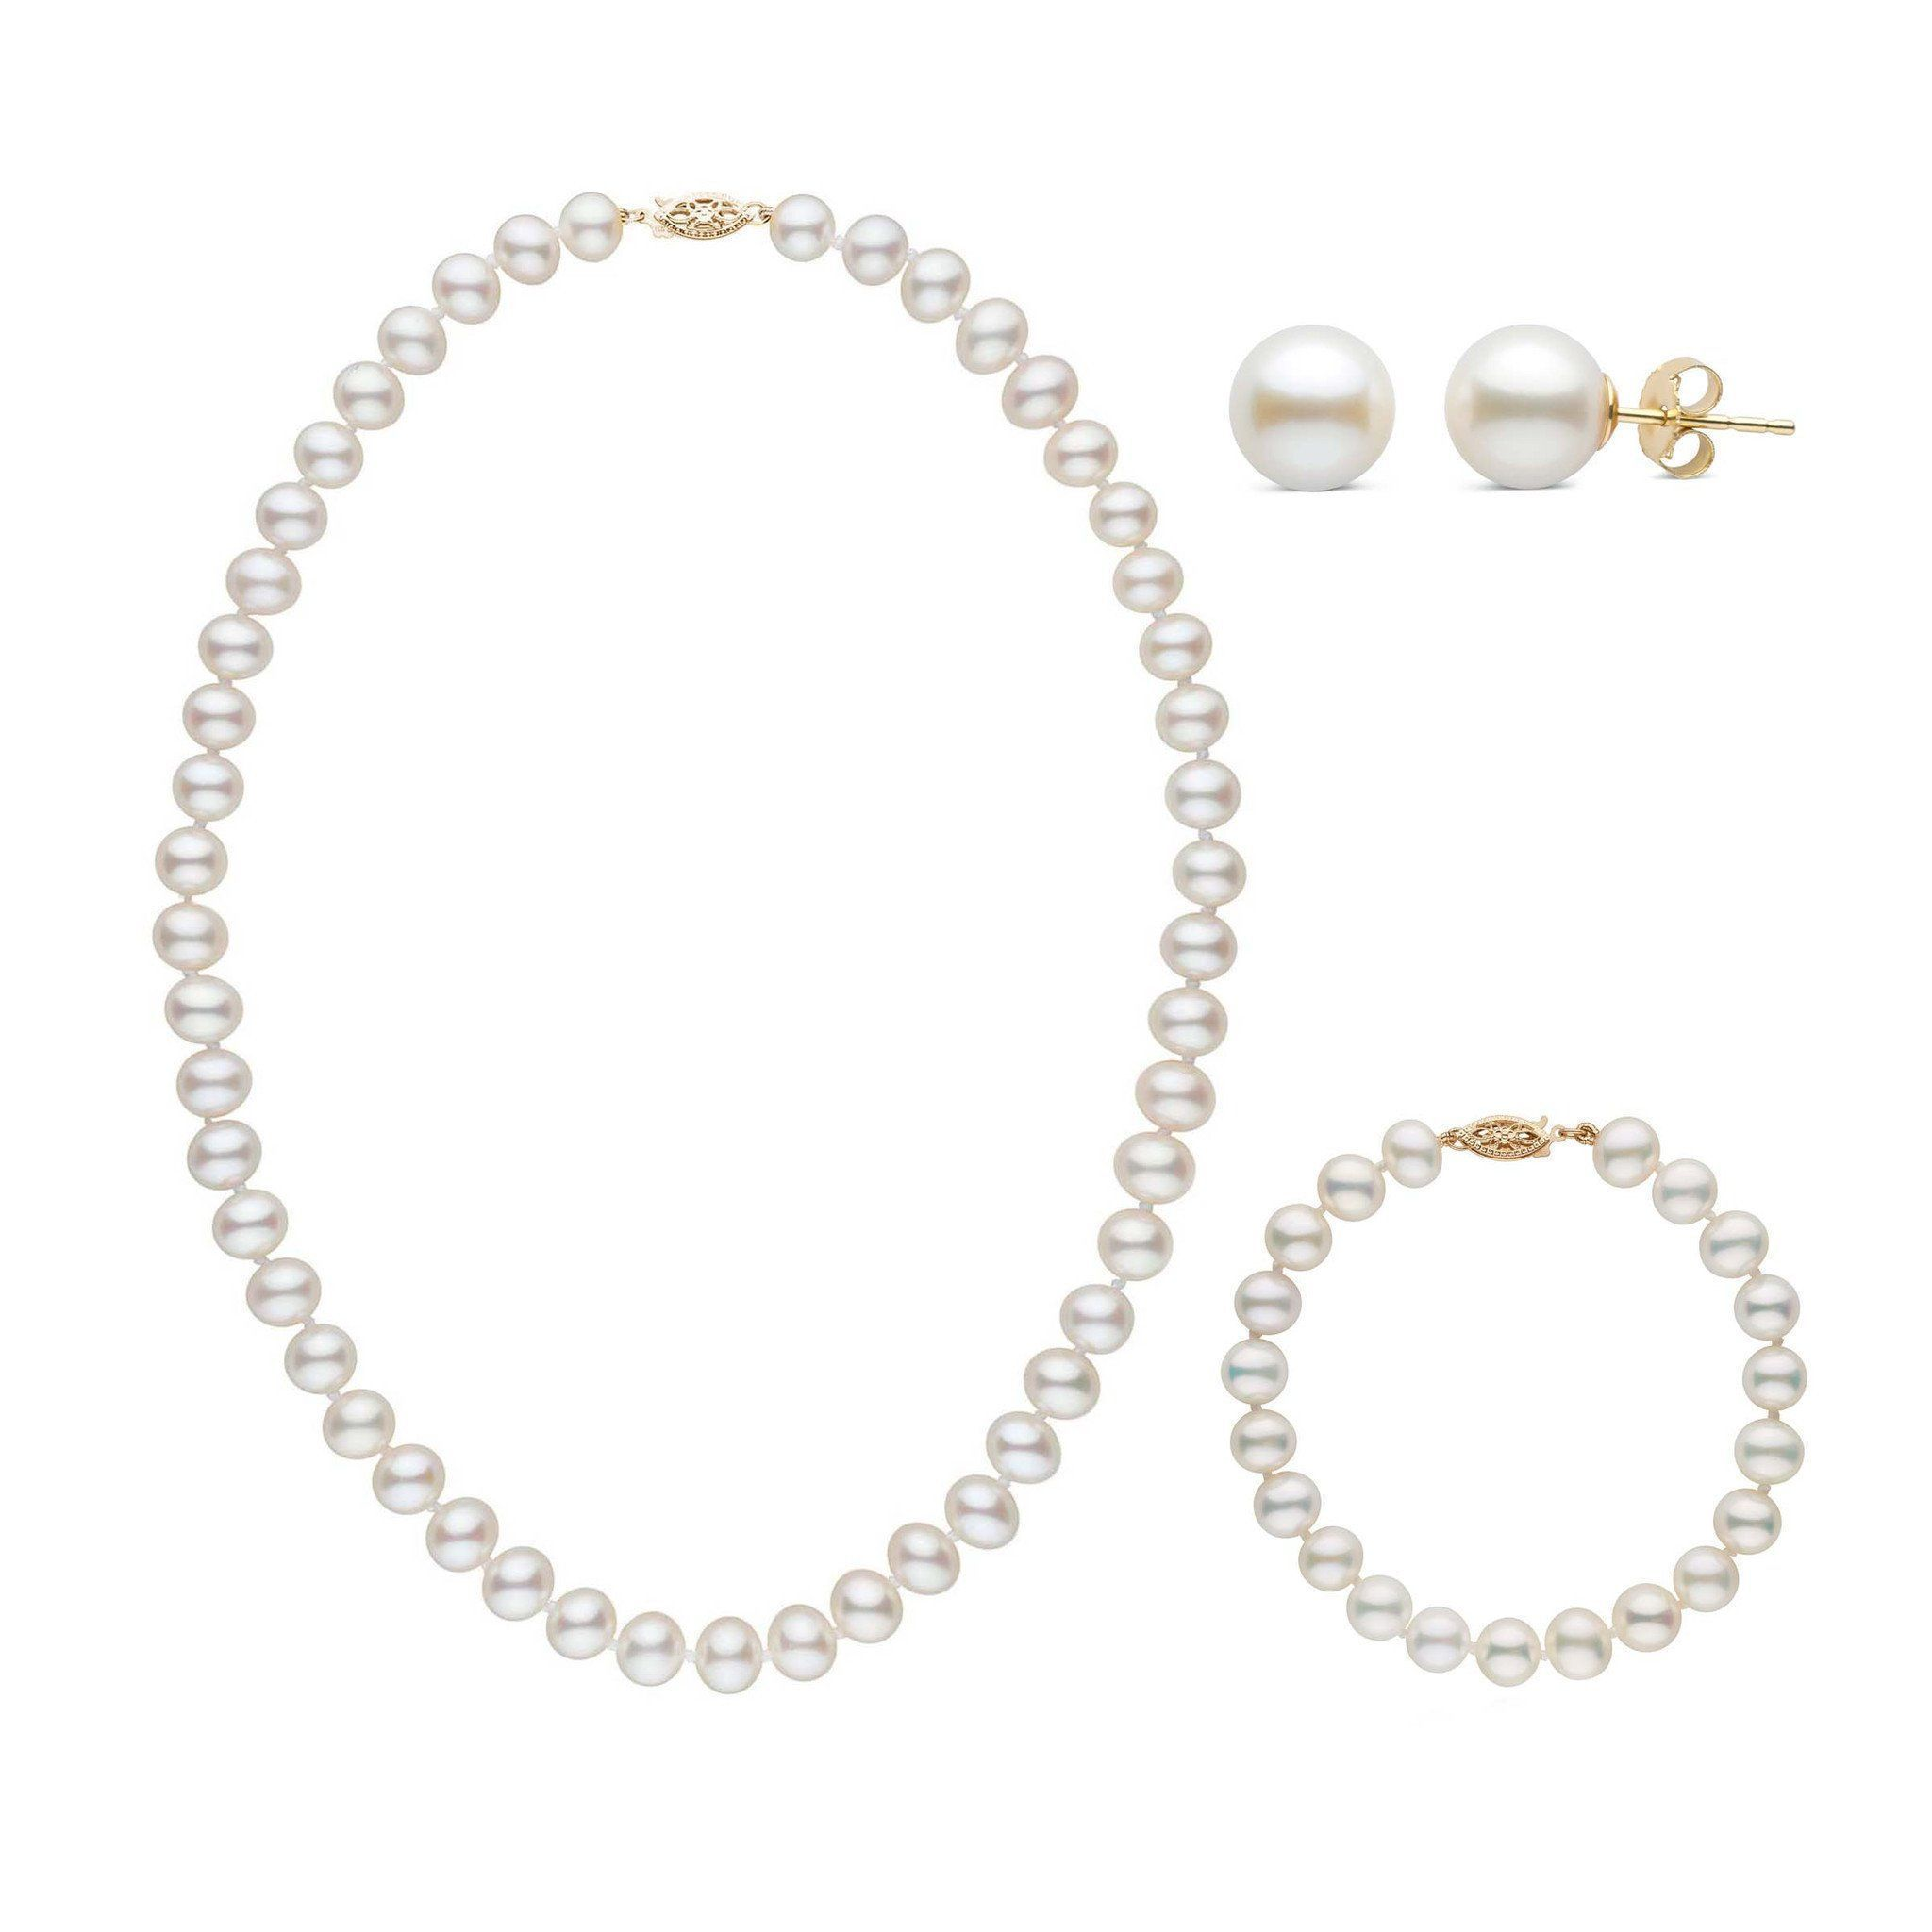 16 Inch 3 Piece Set of 7.5-8.0 mm AA+ White Freshwater Pearls